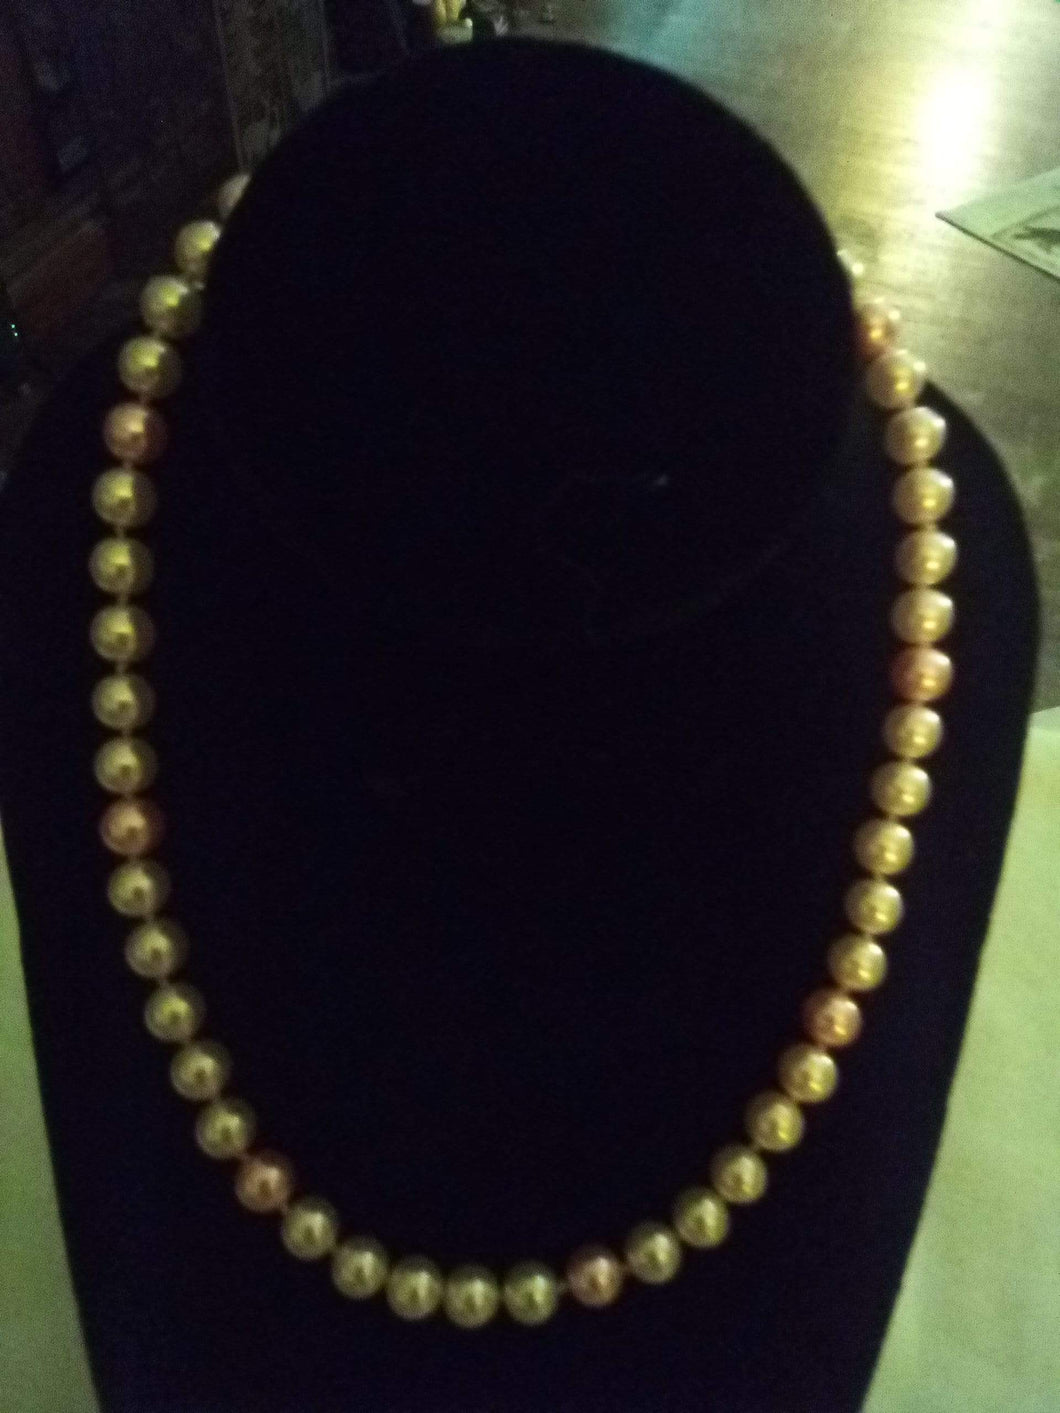 Pink pearl like necklace - B&P'sringsnthings